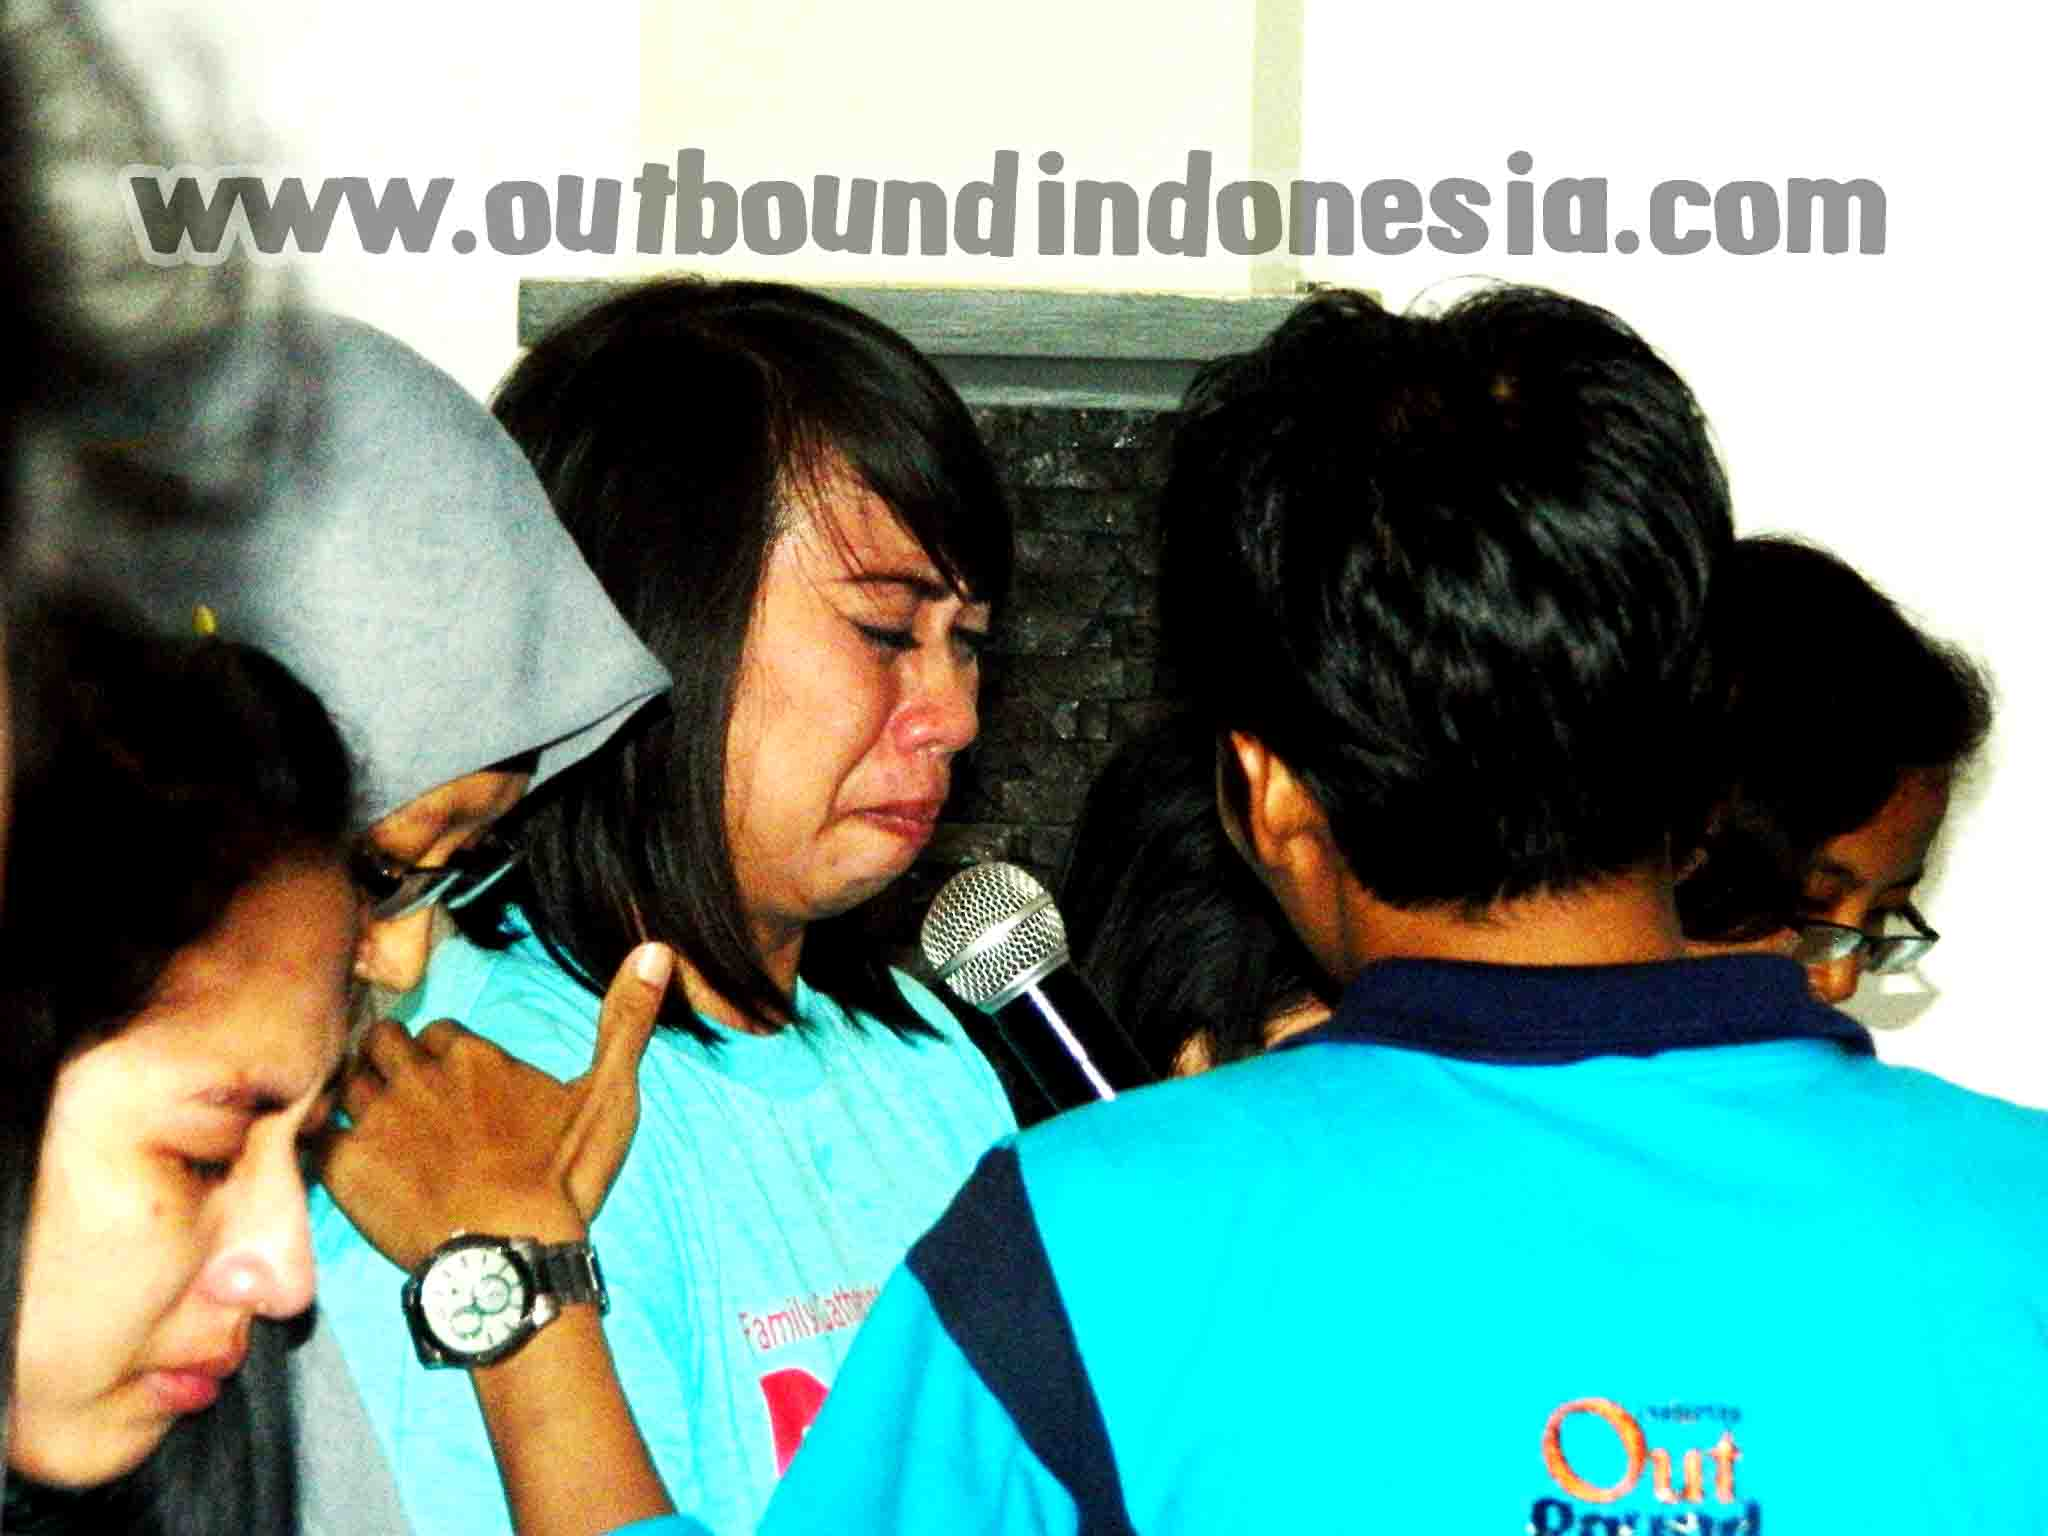 outbound training malang, www.outboundindonesia.com, 0341 5425754